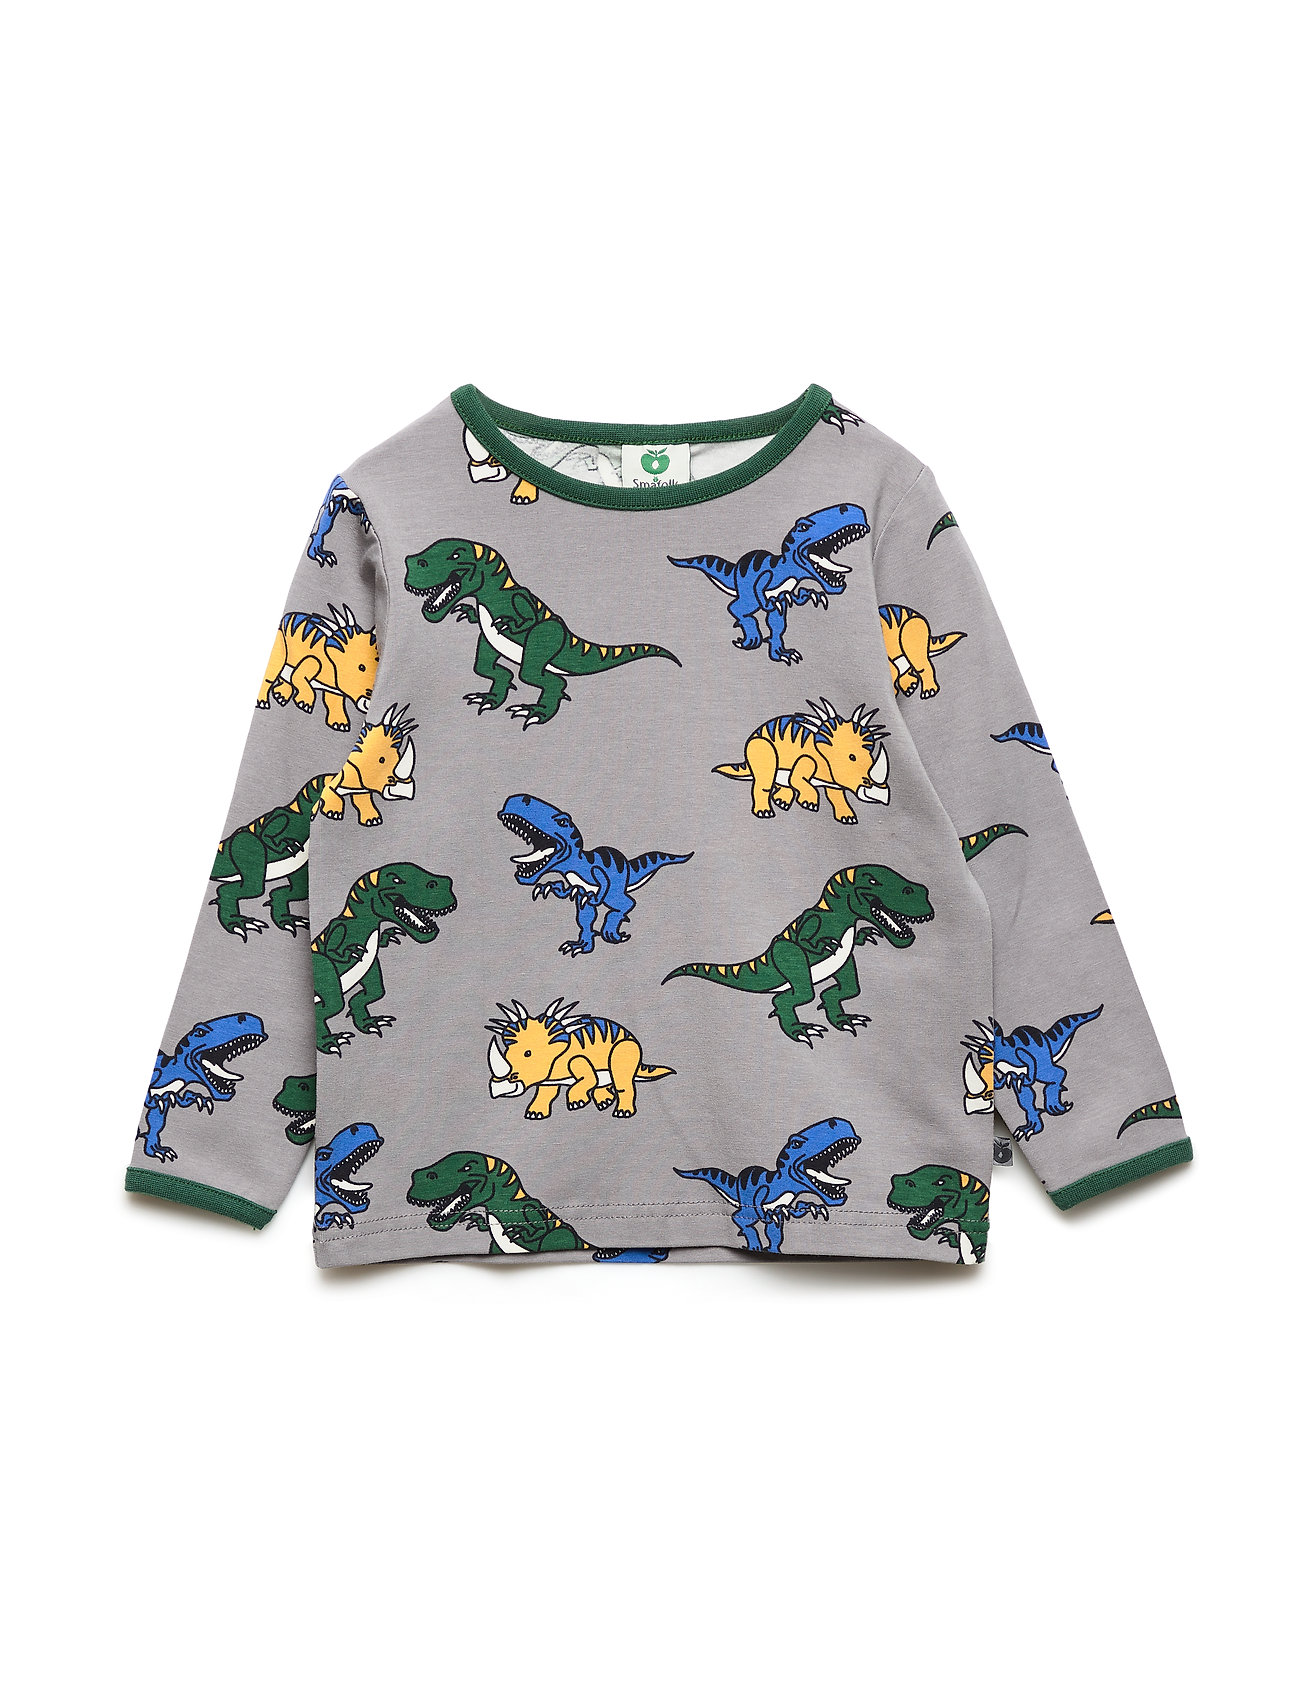 Småfolk T-shirt med dinosaurus - WILDE DOVE